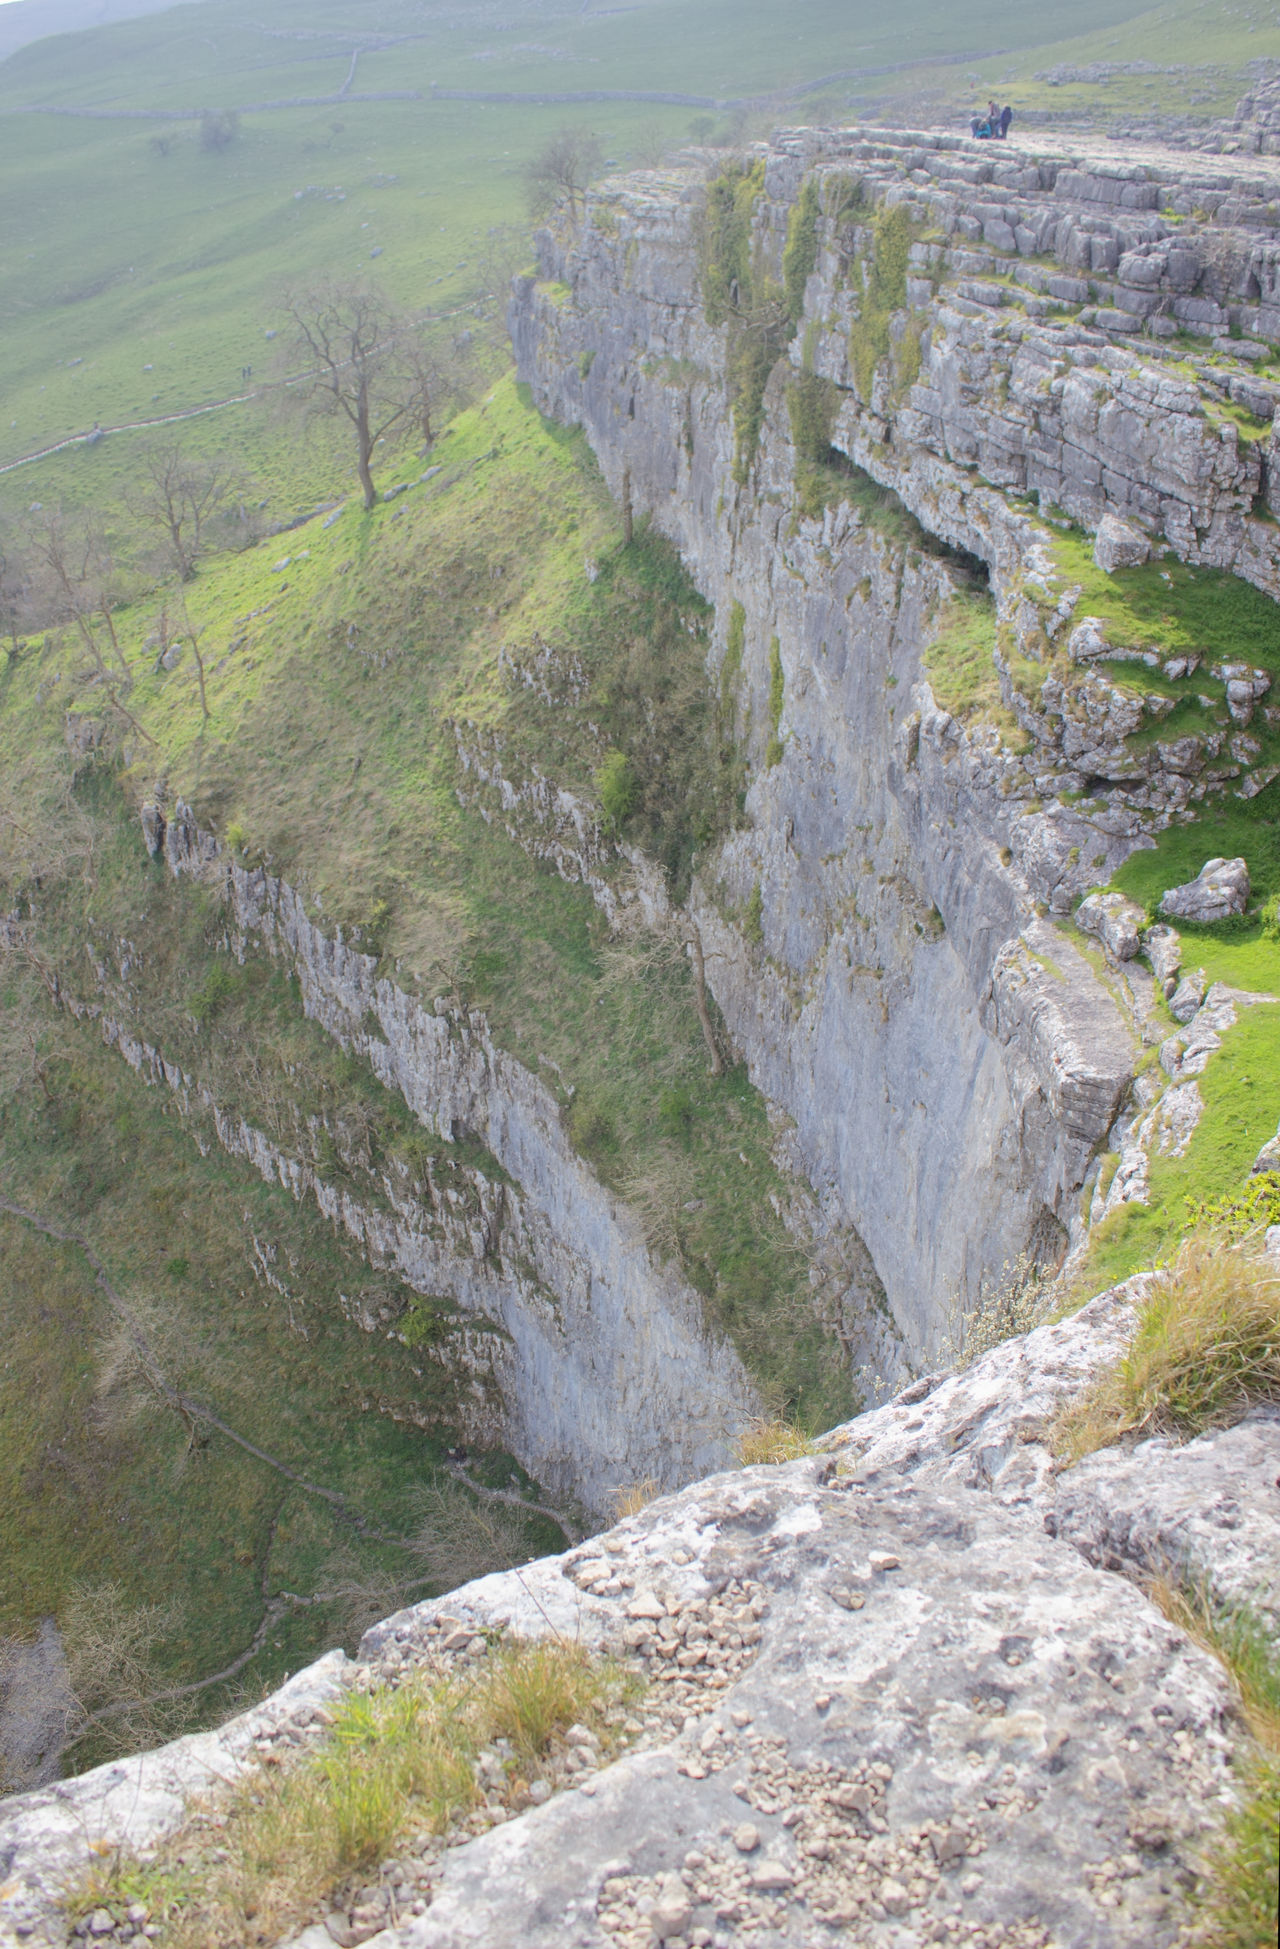 Nature High Angle View Outdoors Landscape Day Beauty In Nature No People Scenics Limestone Rocks Tranquility Limestone Limestone Pavement Yorkshire Dales United Kingdom Malham Cove English Countryside Tranquil Scene Yorkshire Dales Uk Malham The Great Outdoors - 2017 EyeEm Awards